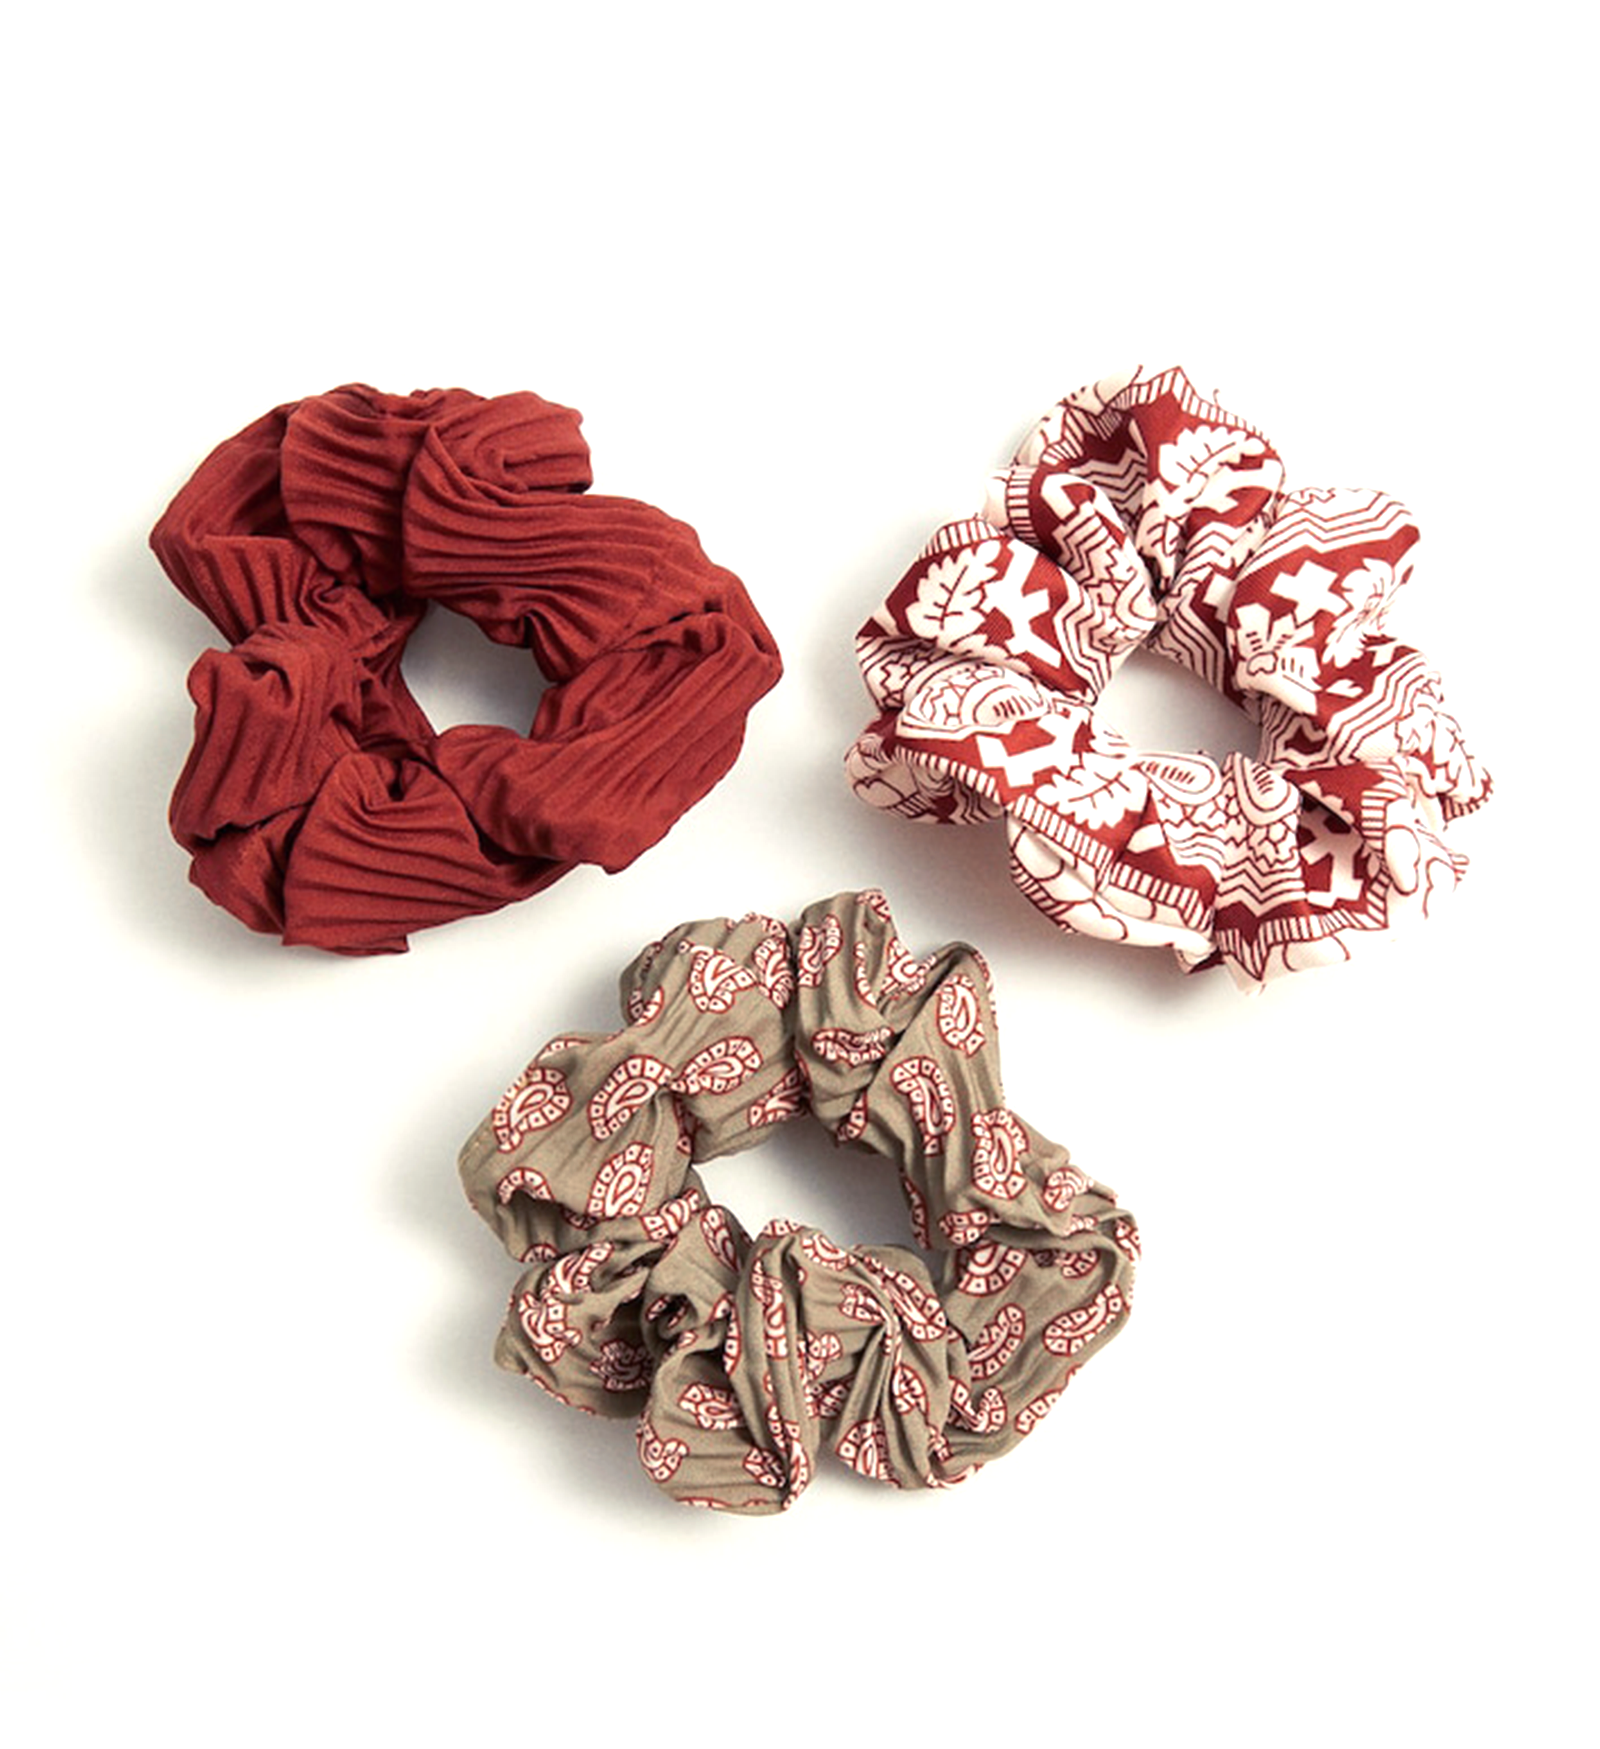 JF19_INT13_Artikel_Image_Hairstyle_Scrunchie_Revival_1600×1749_03.png